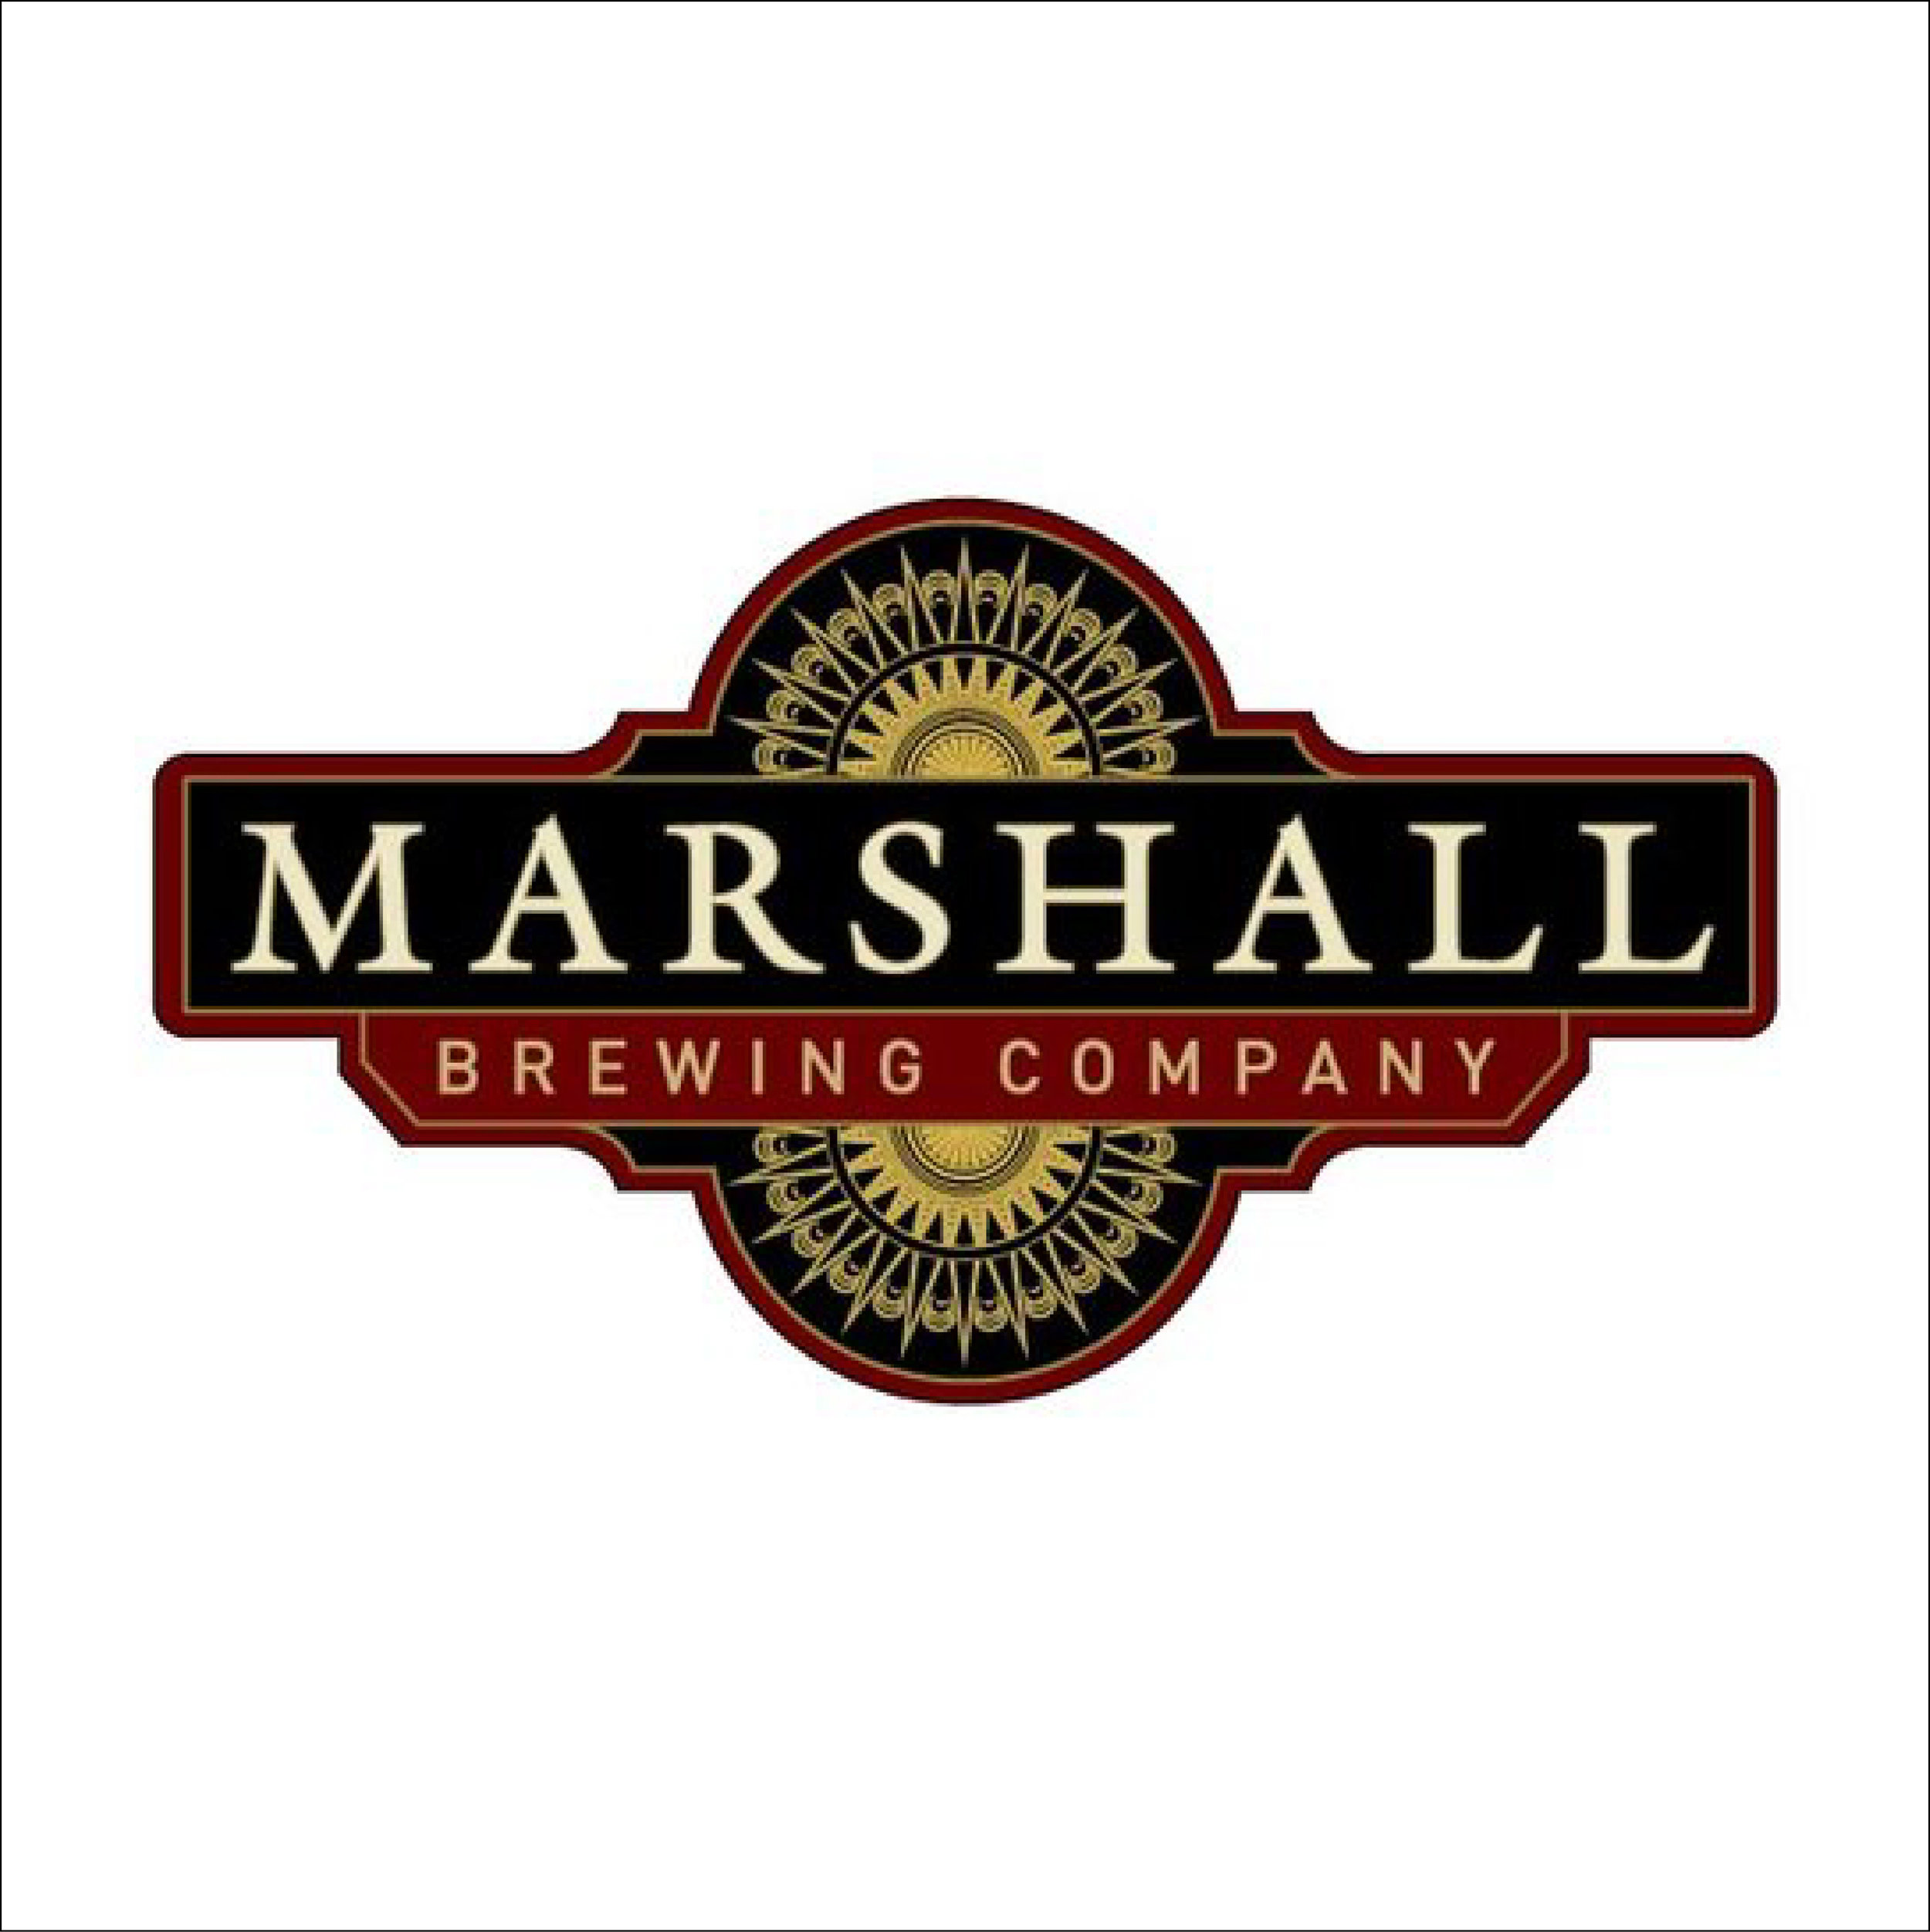 Marshall Brewing - 1742 E. 6th St.Tulsa, OK 74104Taproom Hours:Sun 12-6 pmMon 2-9 pmTues 2-9 pmWed 2-9 pmThur 2-9 pmFri 12-9 pmSat 12-9 pm